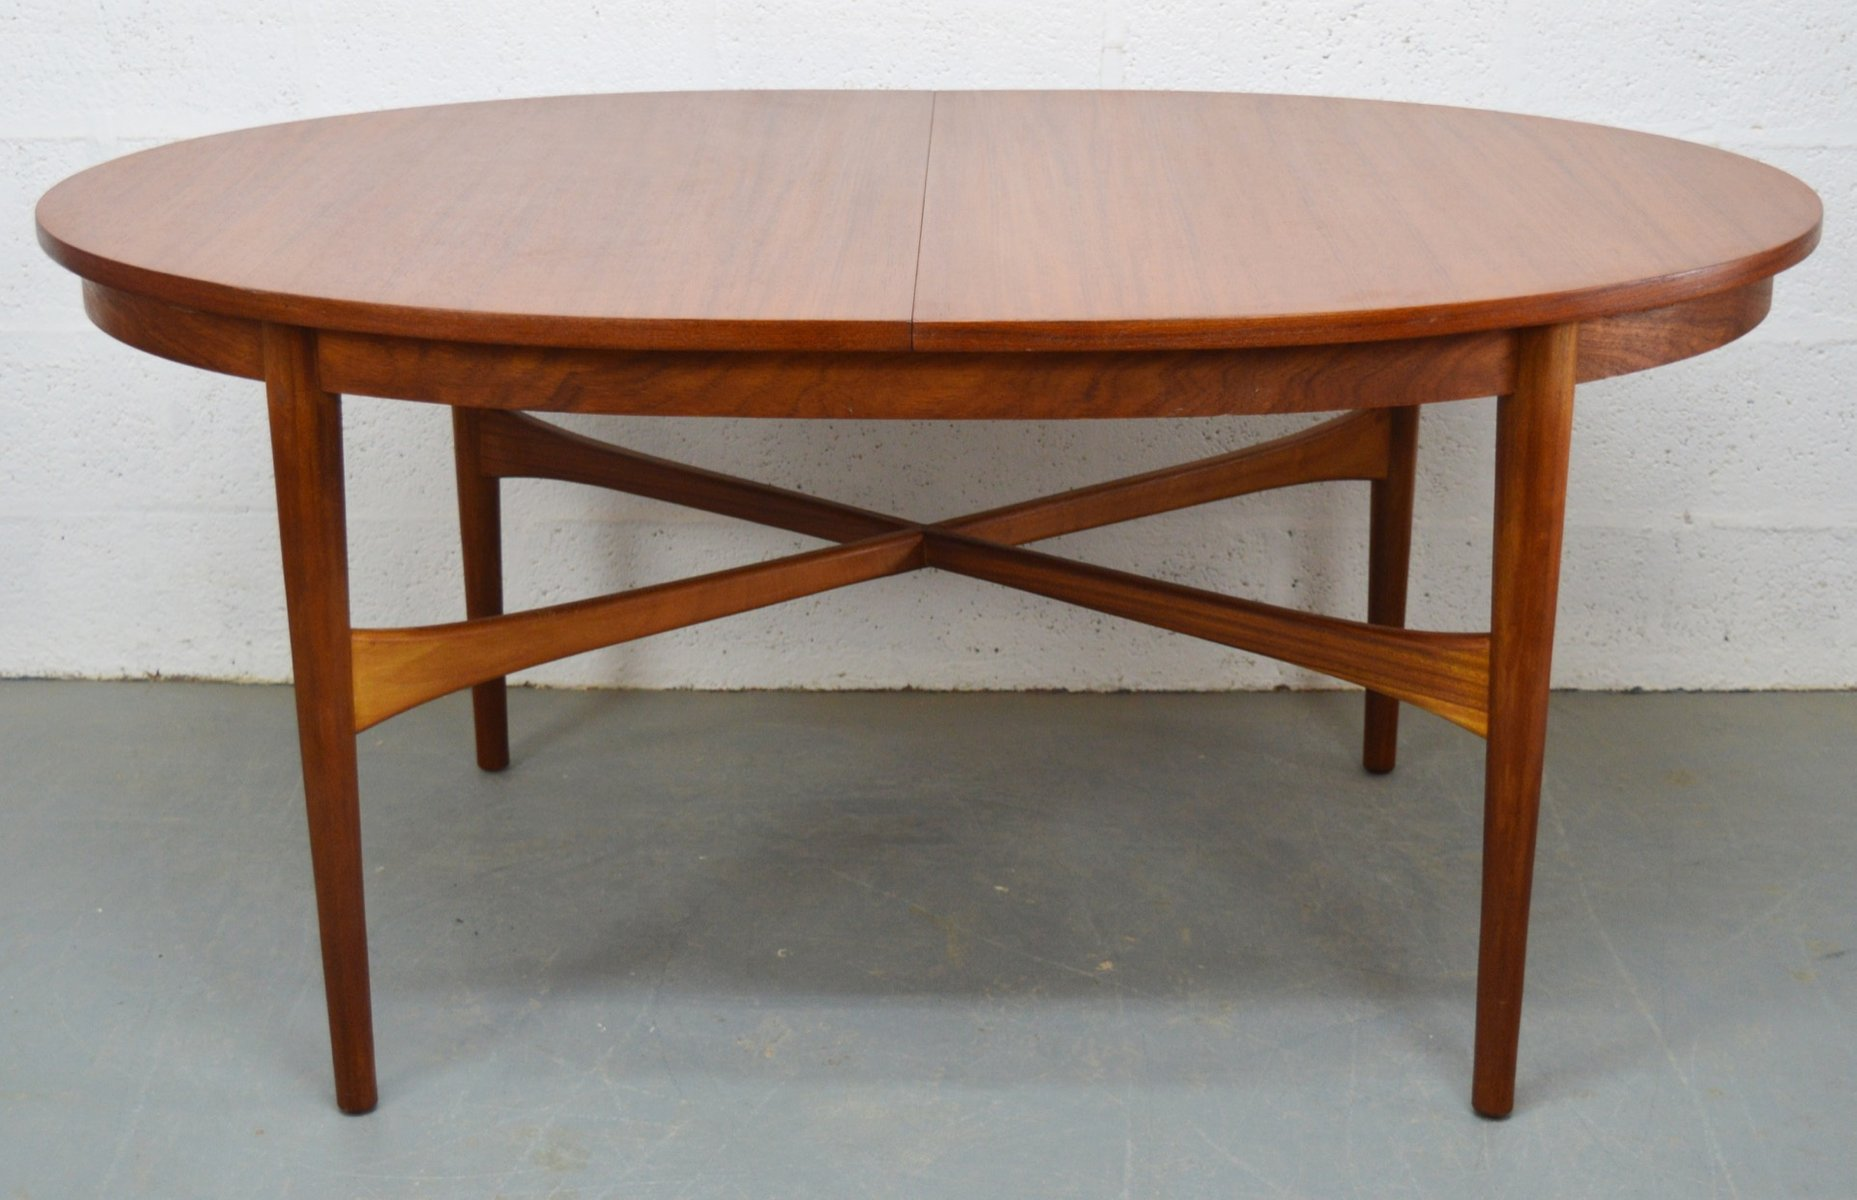 Mid Century Teak Extendable Oval Dining Table from  : mid century teak extendable oval dining table from beithcraft 8 from www.pamono.com.au size 1856 x 1200 jpeg 135kB